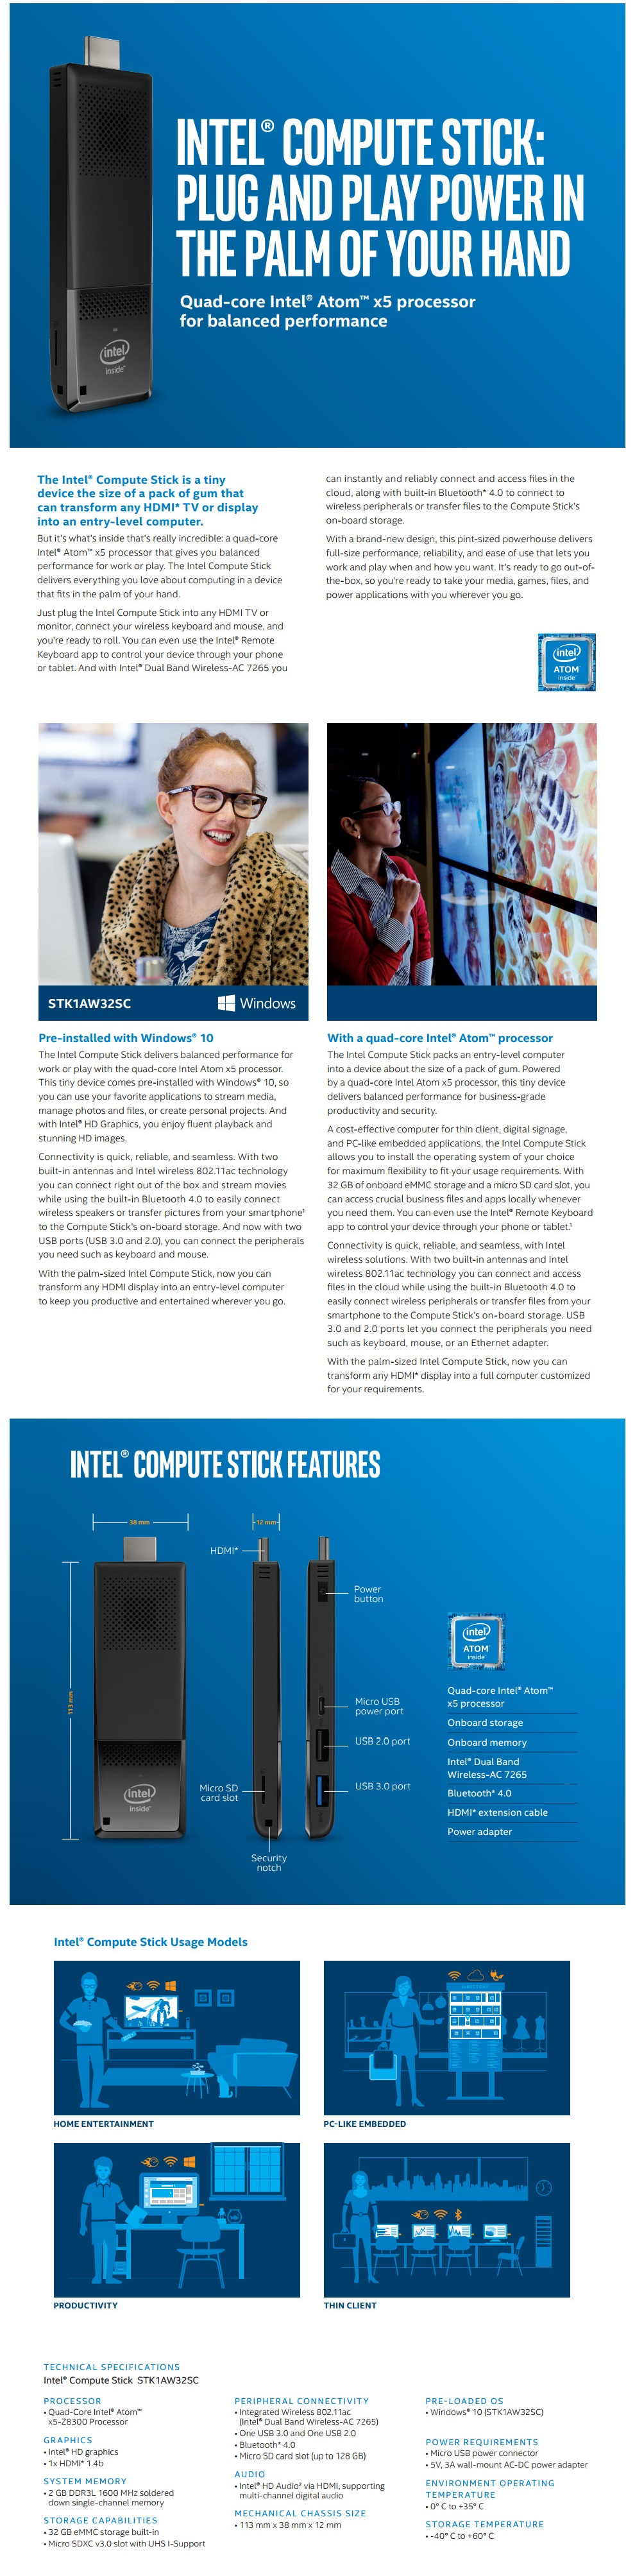 A large marketing image providing additional information about the product Intel Compute Stick STK1AW32SC Windows 10 Portable PC - Additional alt info not provided